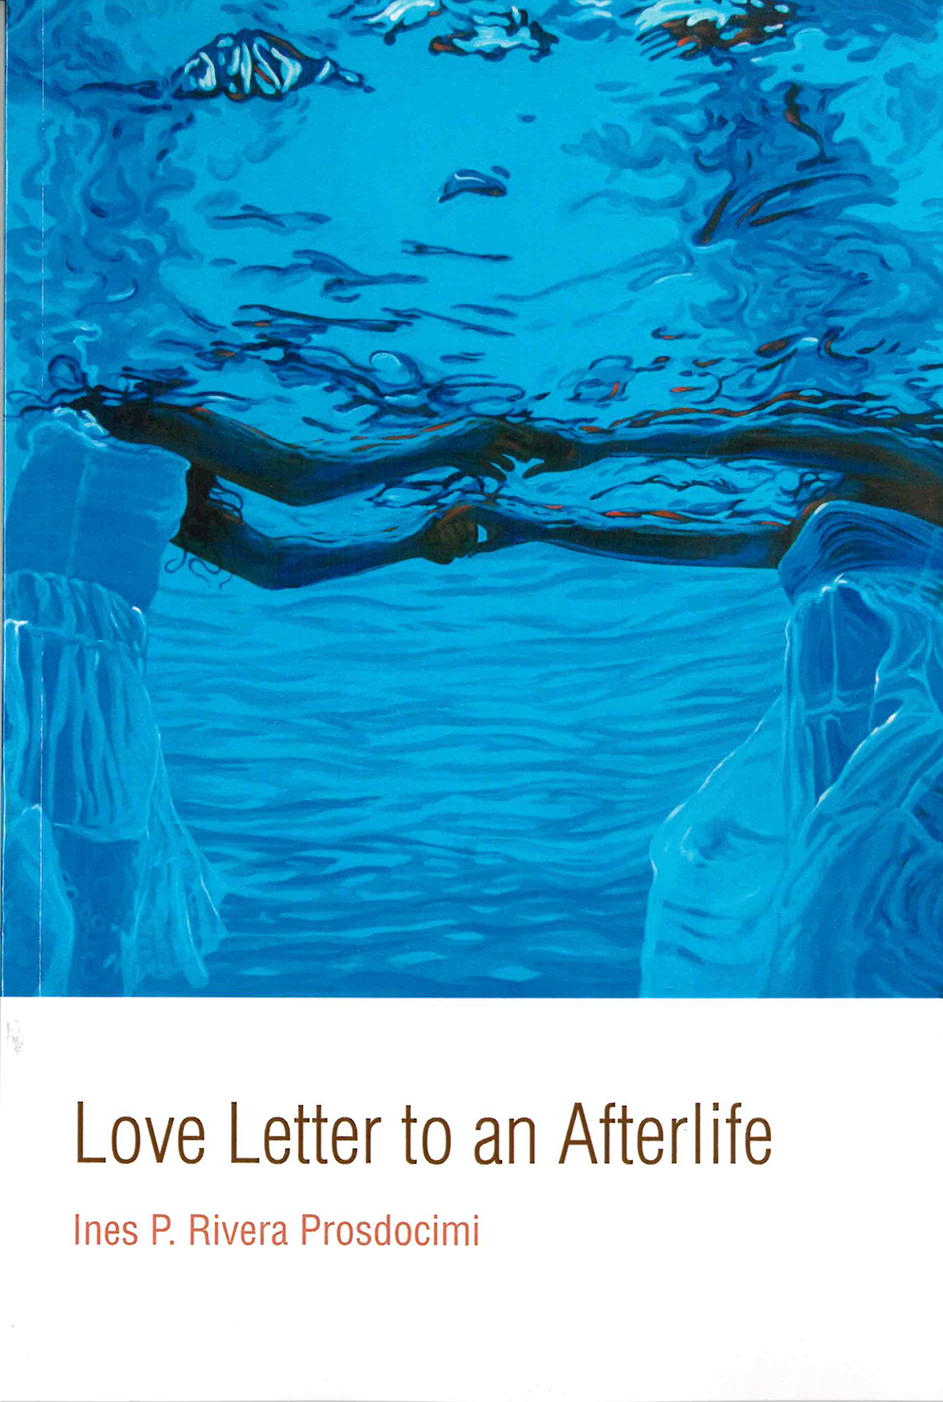 Love Letter to an Afterlife